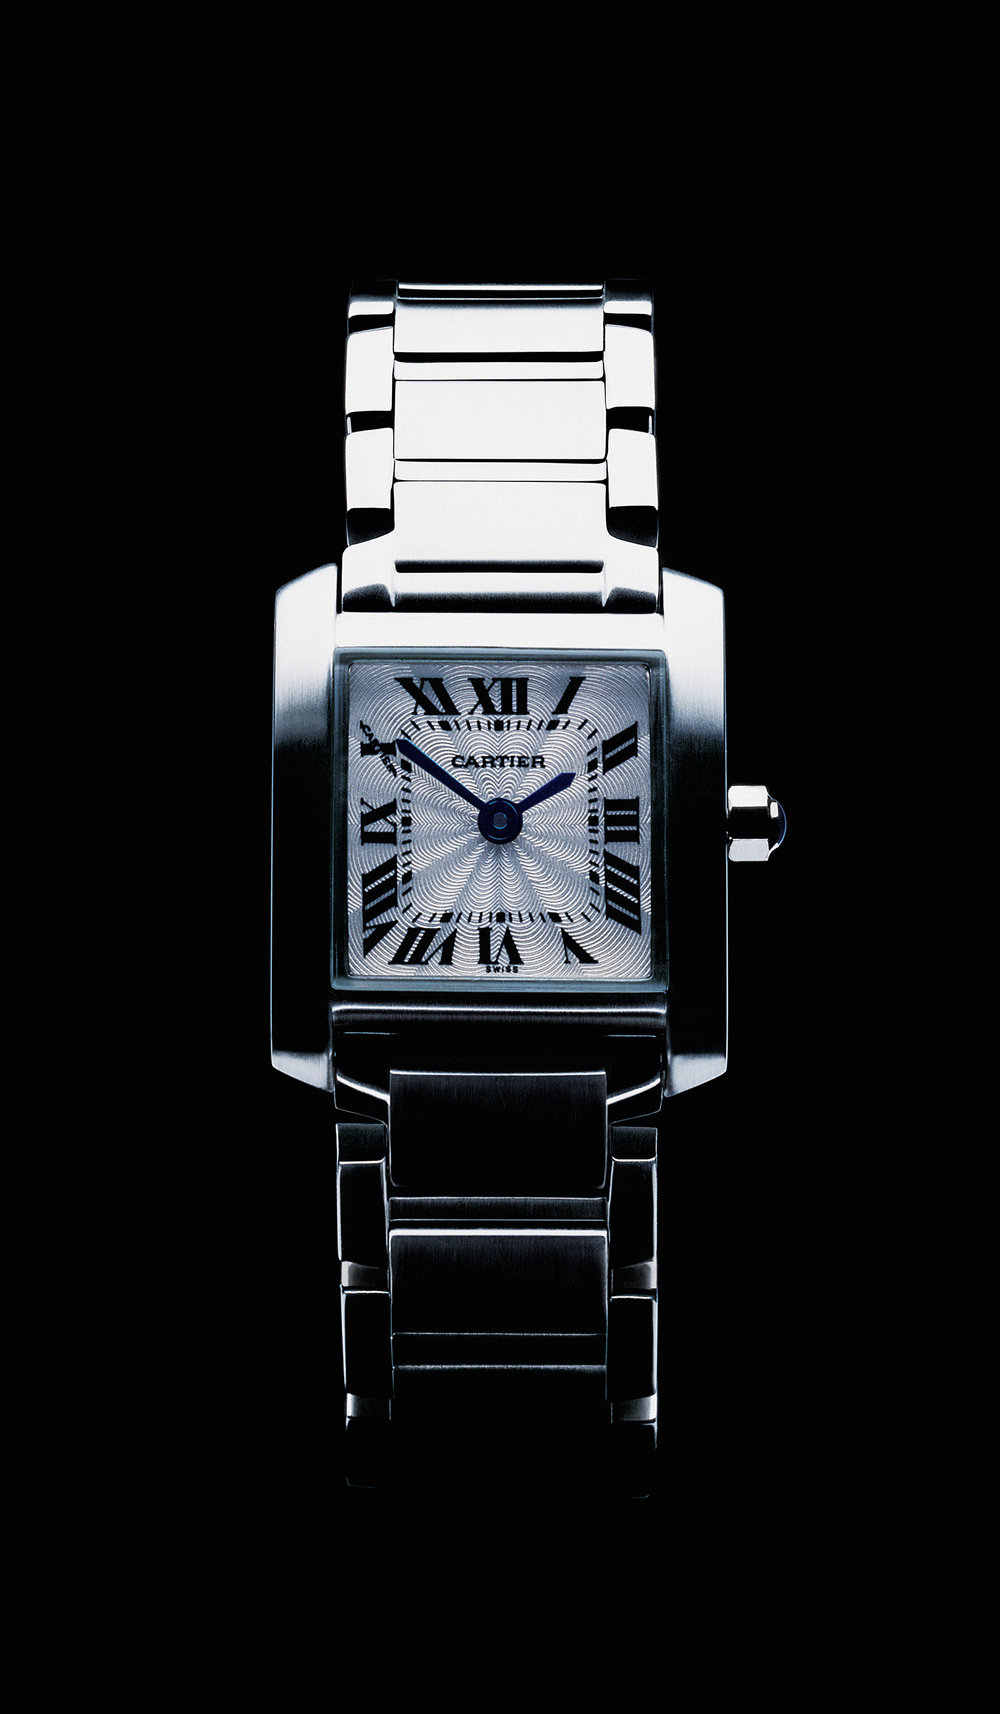 Cartier Tank: R$ 120,00   (What Seduces You series) (detail) • 2003/  2004 •   Photograph, digital print, sales receipt •   47.2   x 27.5   in, 11.8   x 11.8 in (di  pty  ch)